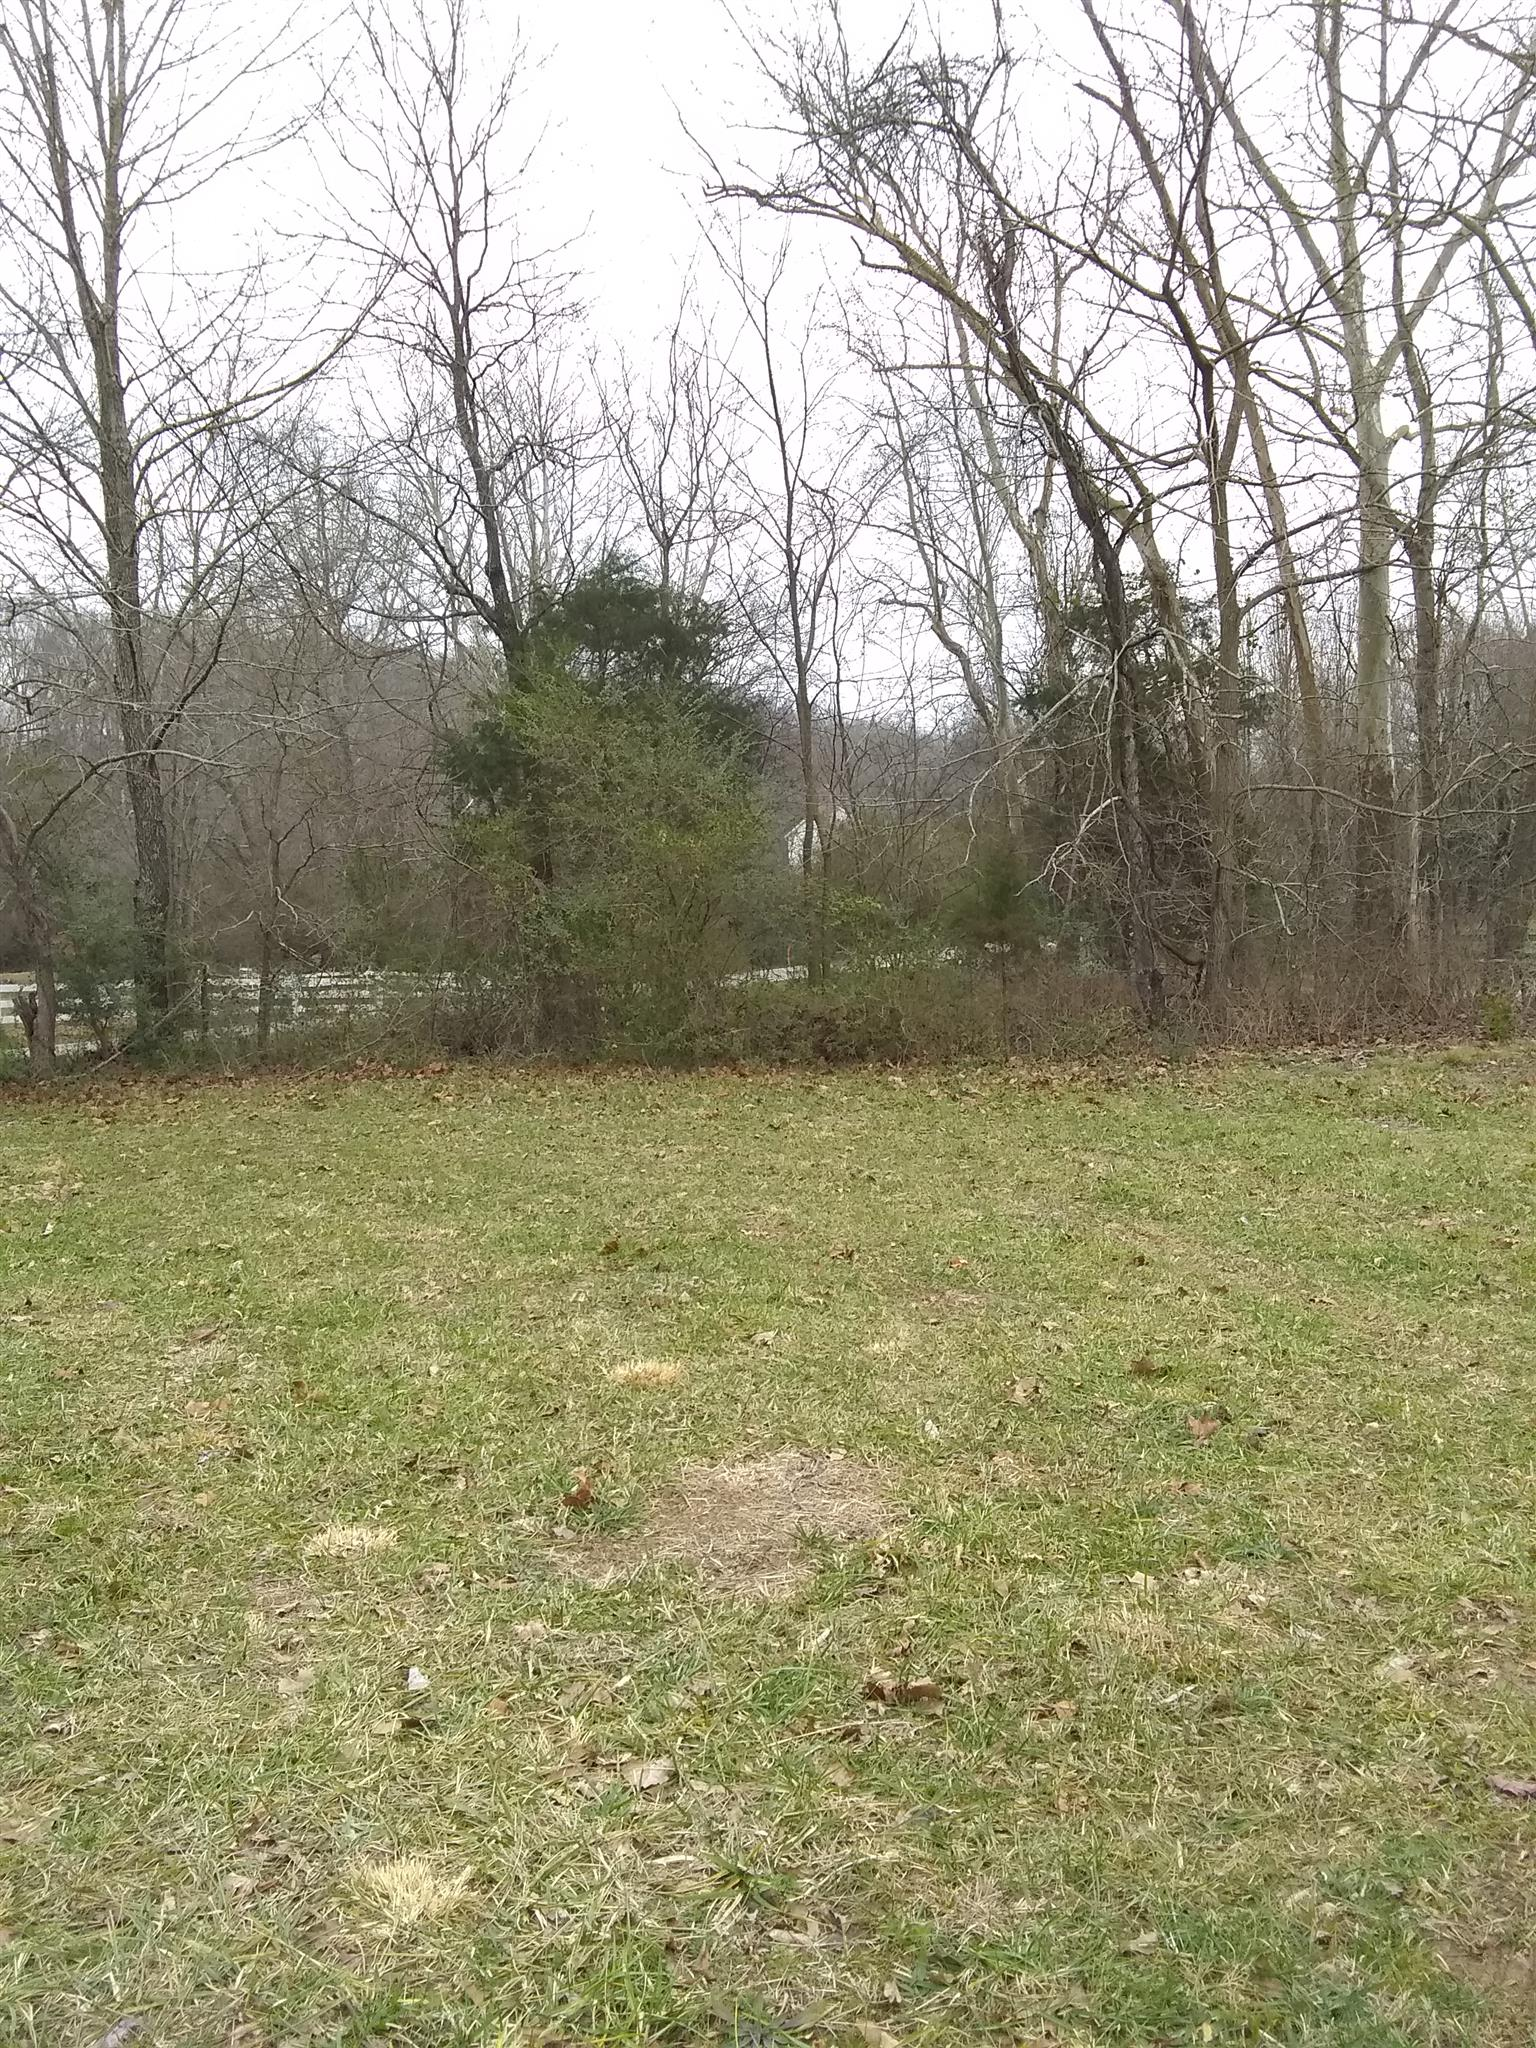 7895 Pinewood Rd, Fairview in Williamson County County, TN 37062 Home for Sale